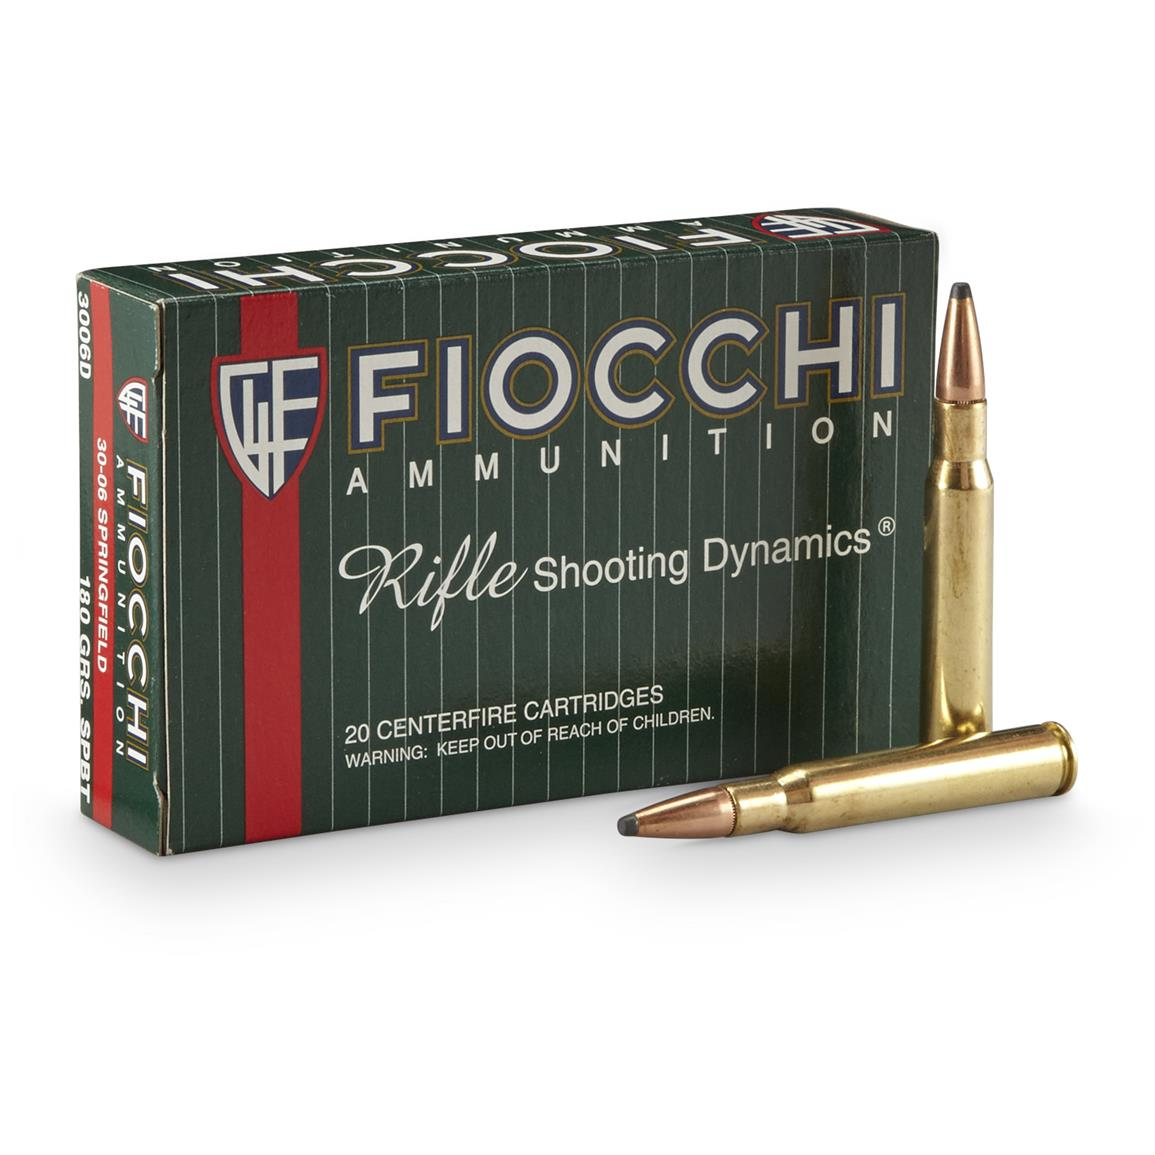 Fiocchi® 30-06 SPR PSP 180 Grain Rifle Shooting Dynamics Ammo, 20 Rounds